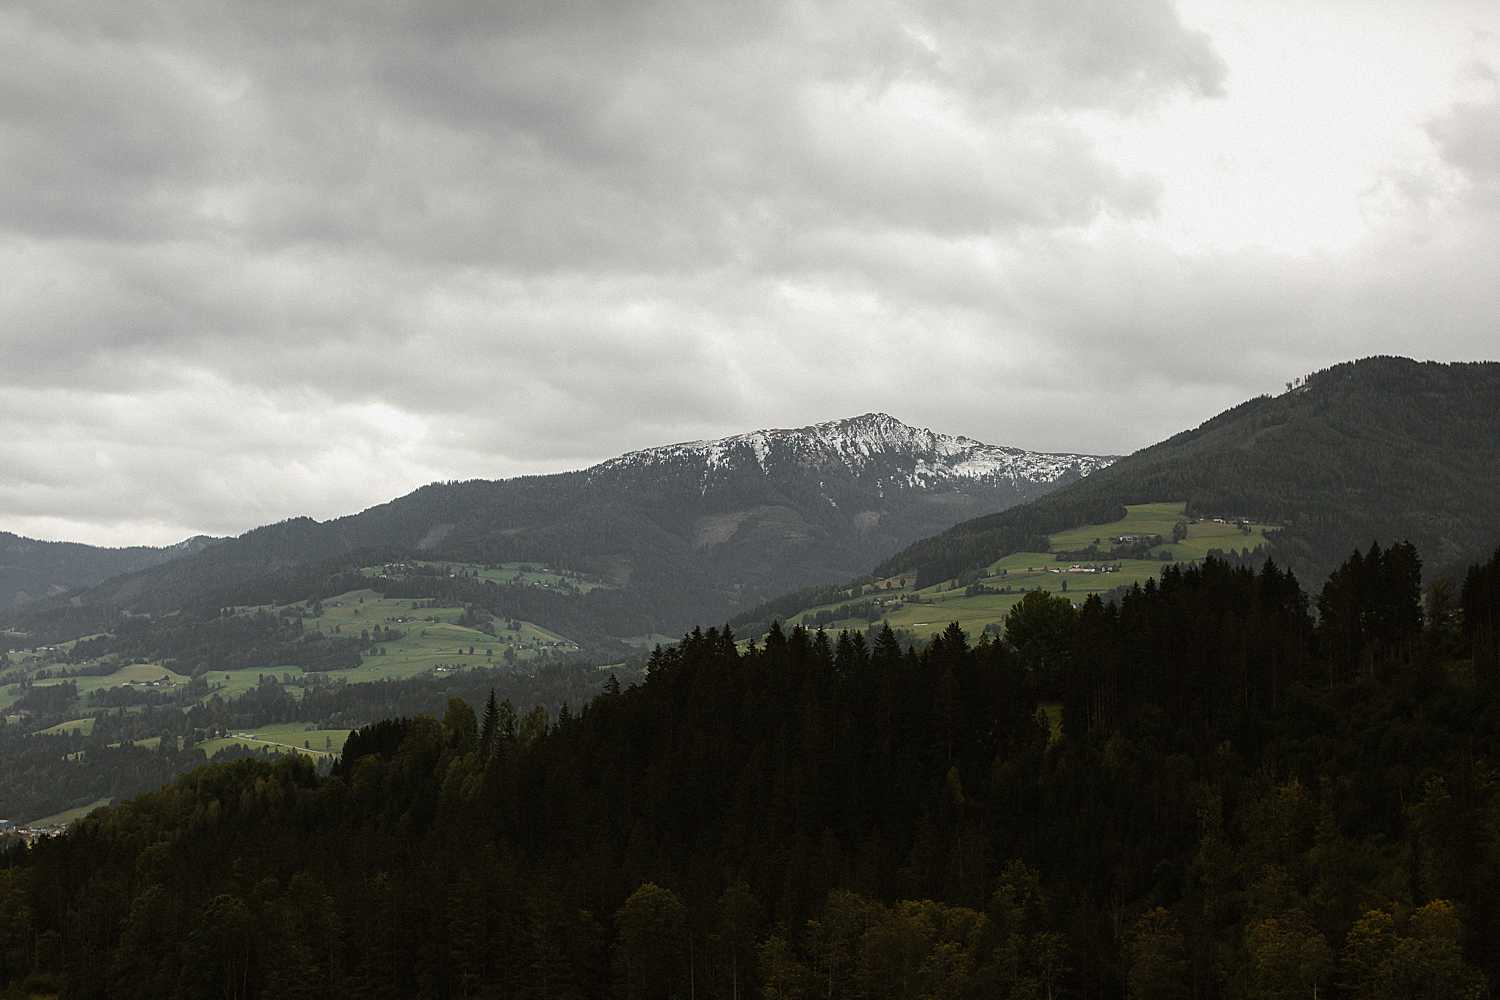 Mountains of Schladming